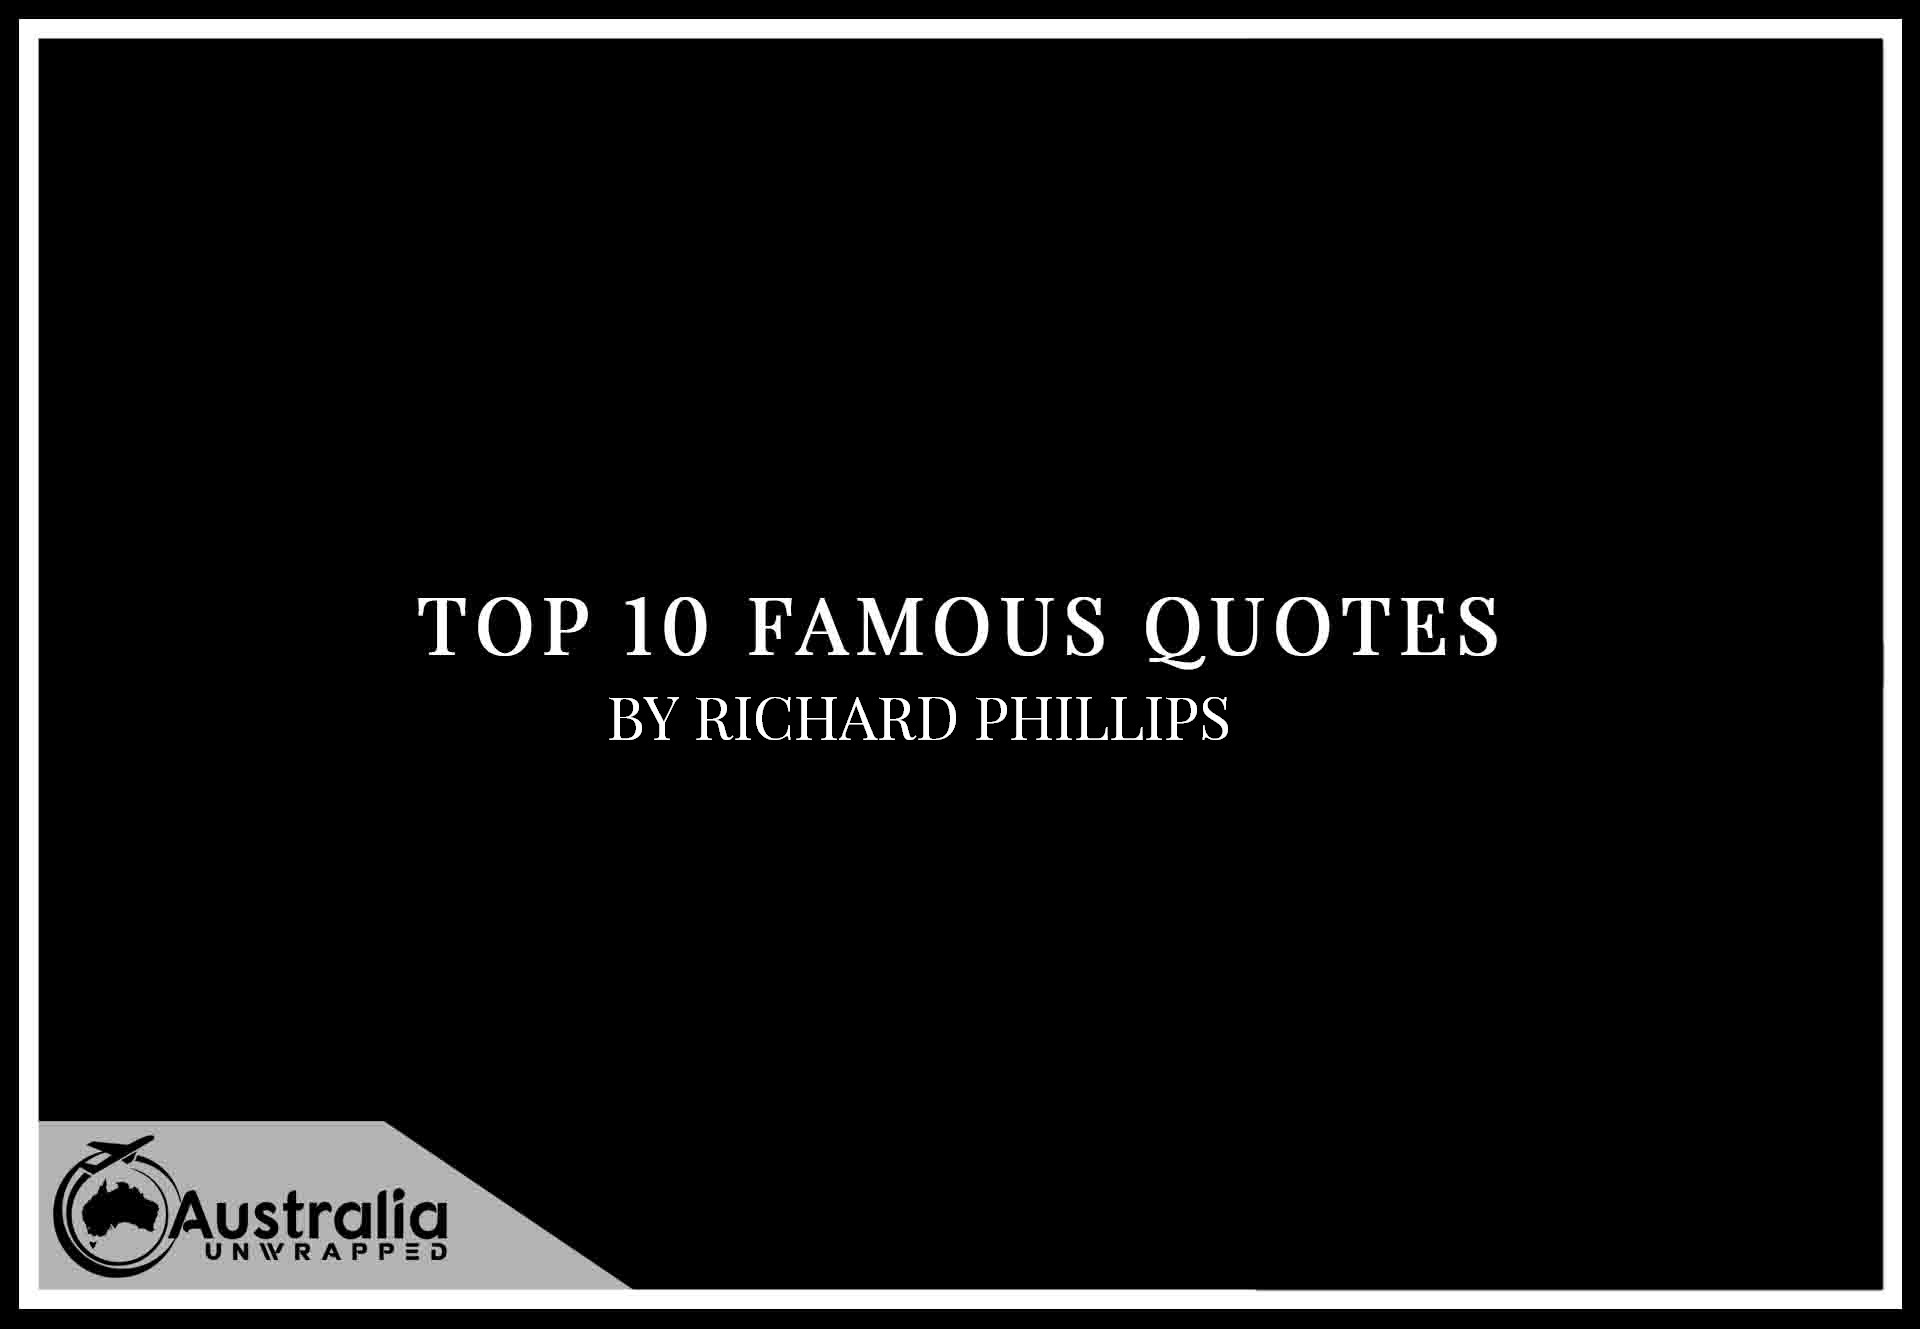 Top 10 Famous Quotes by Author Richard Phillips